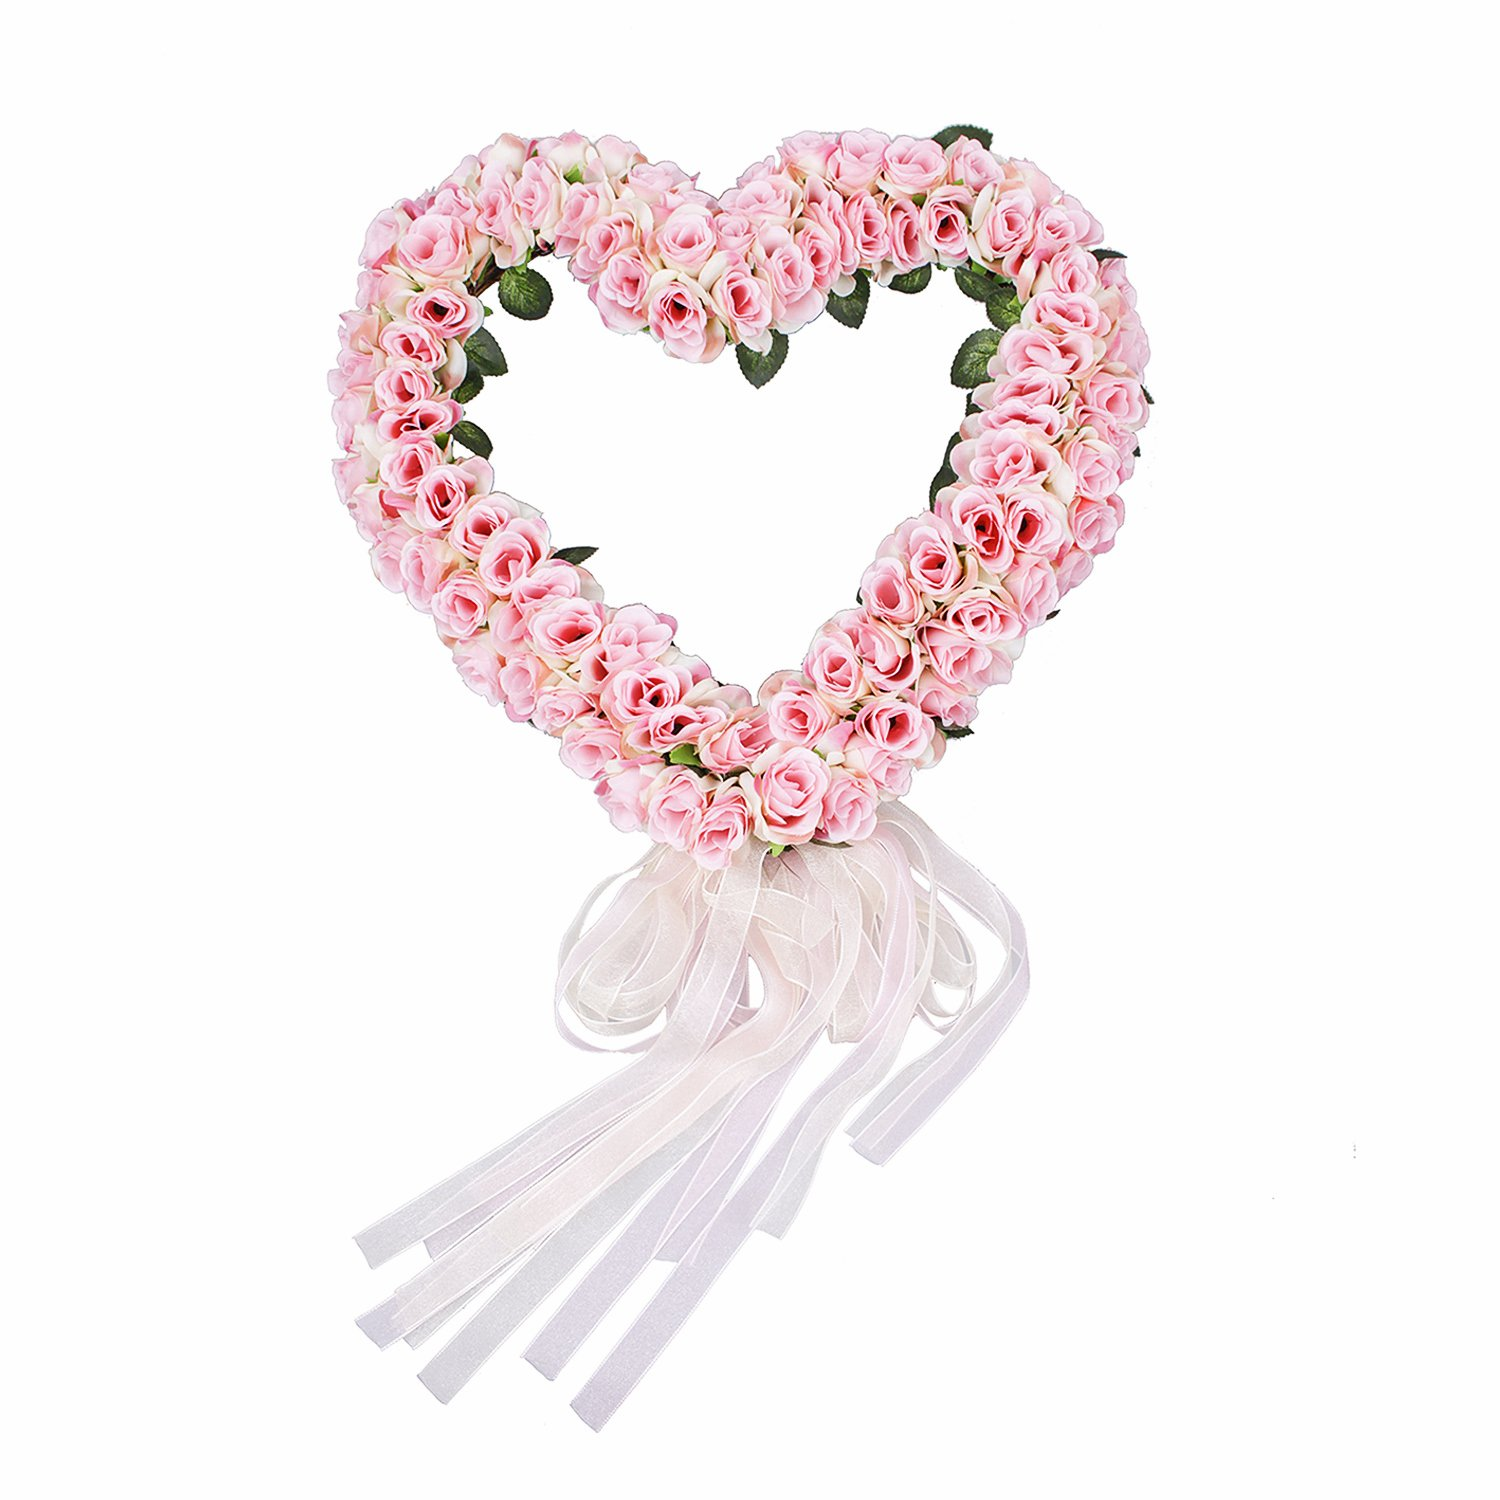 FAVOWREATH 2018 Love Series FAVO-W05 Handmade 14 inch Pink Rose Flowers Heart Wreath Fall Grapevine Wreath For Summer Front Door/Wall/Fireplace Wedding Floral Hanger Marry Anniversary Home Decor